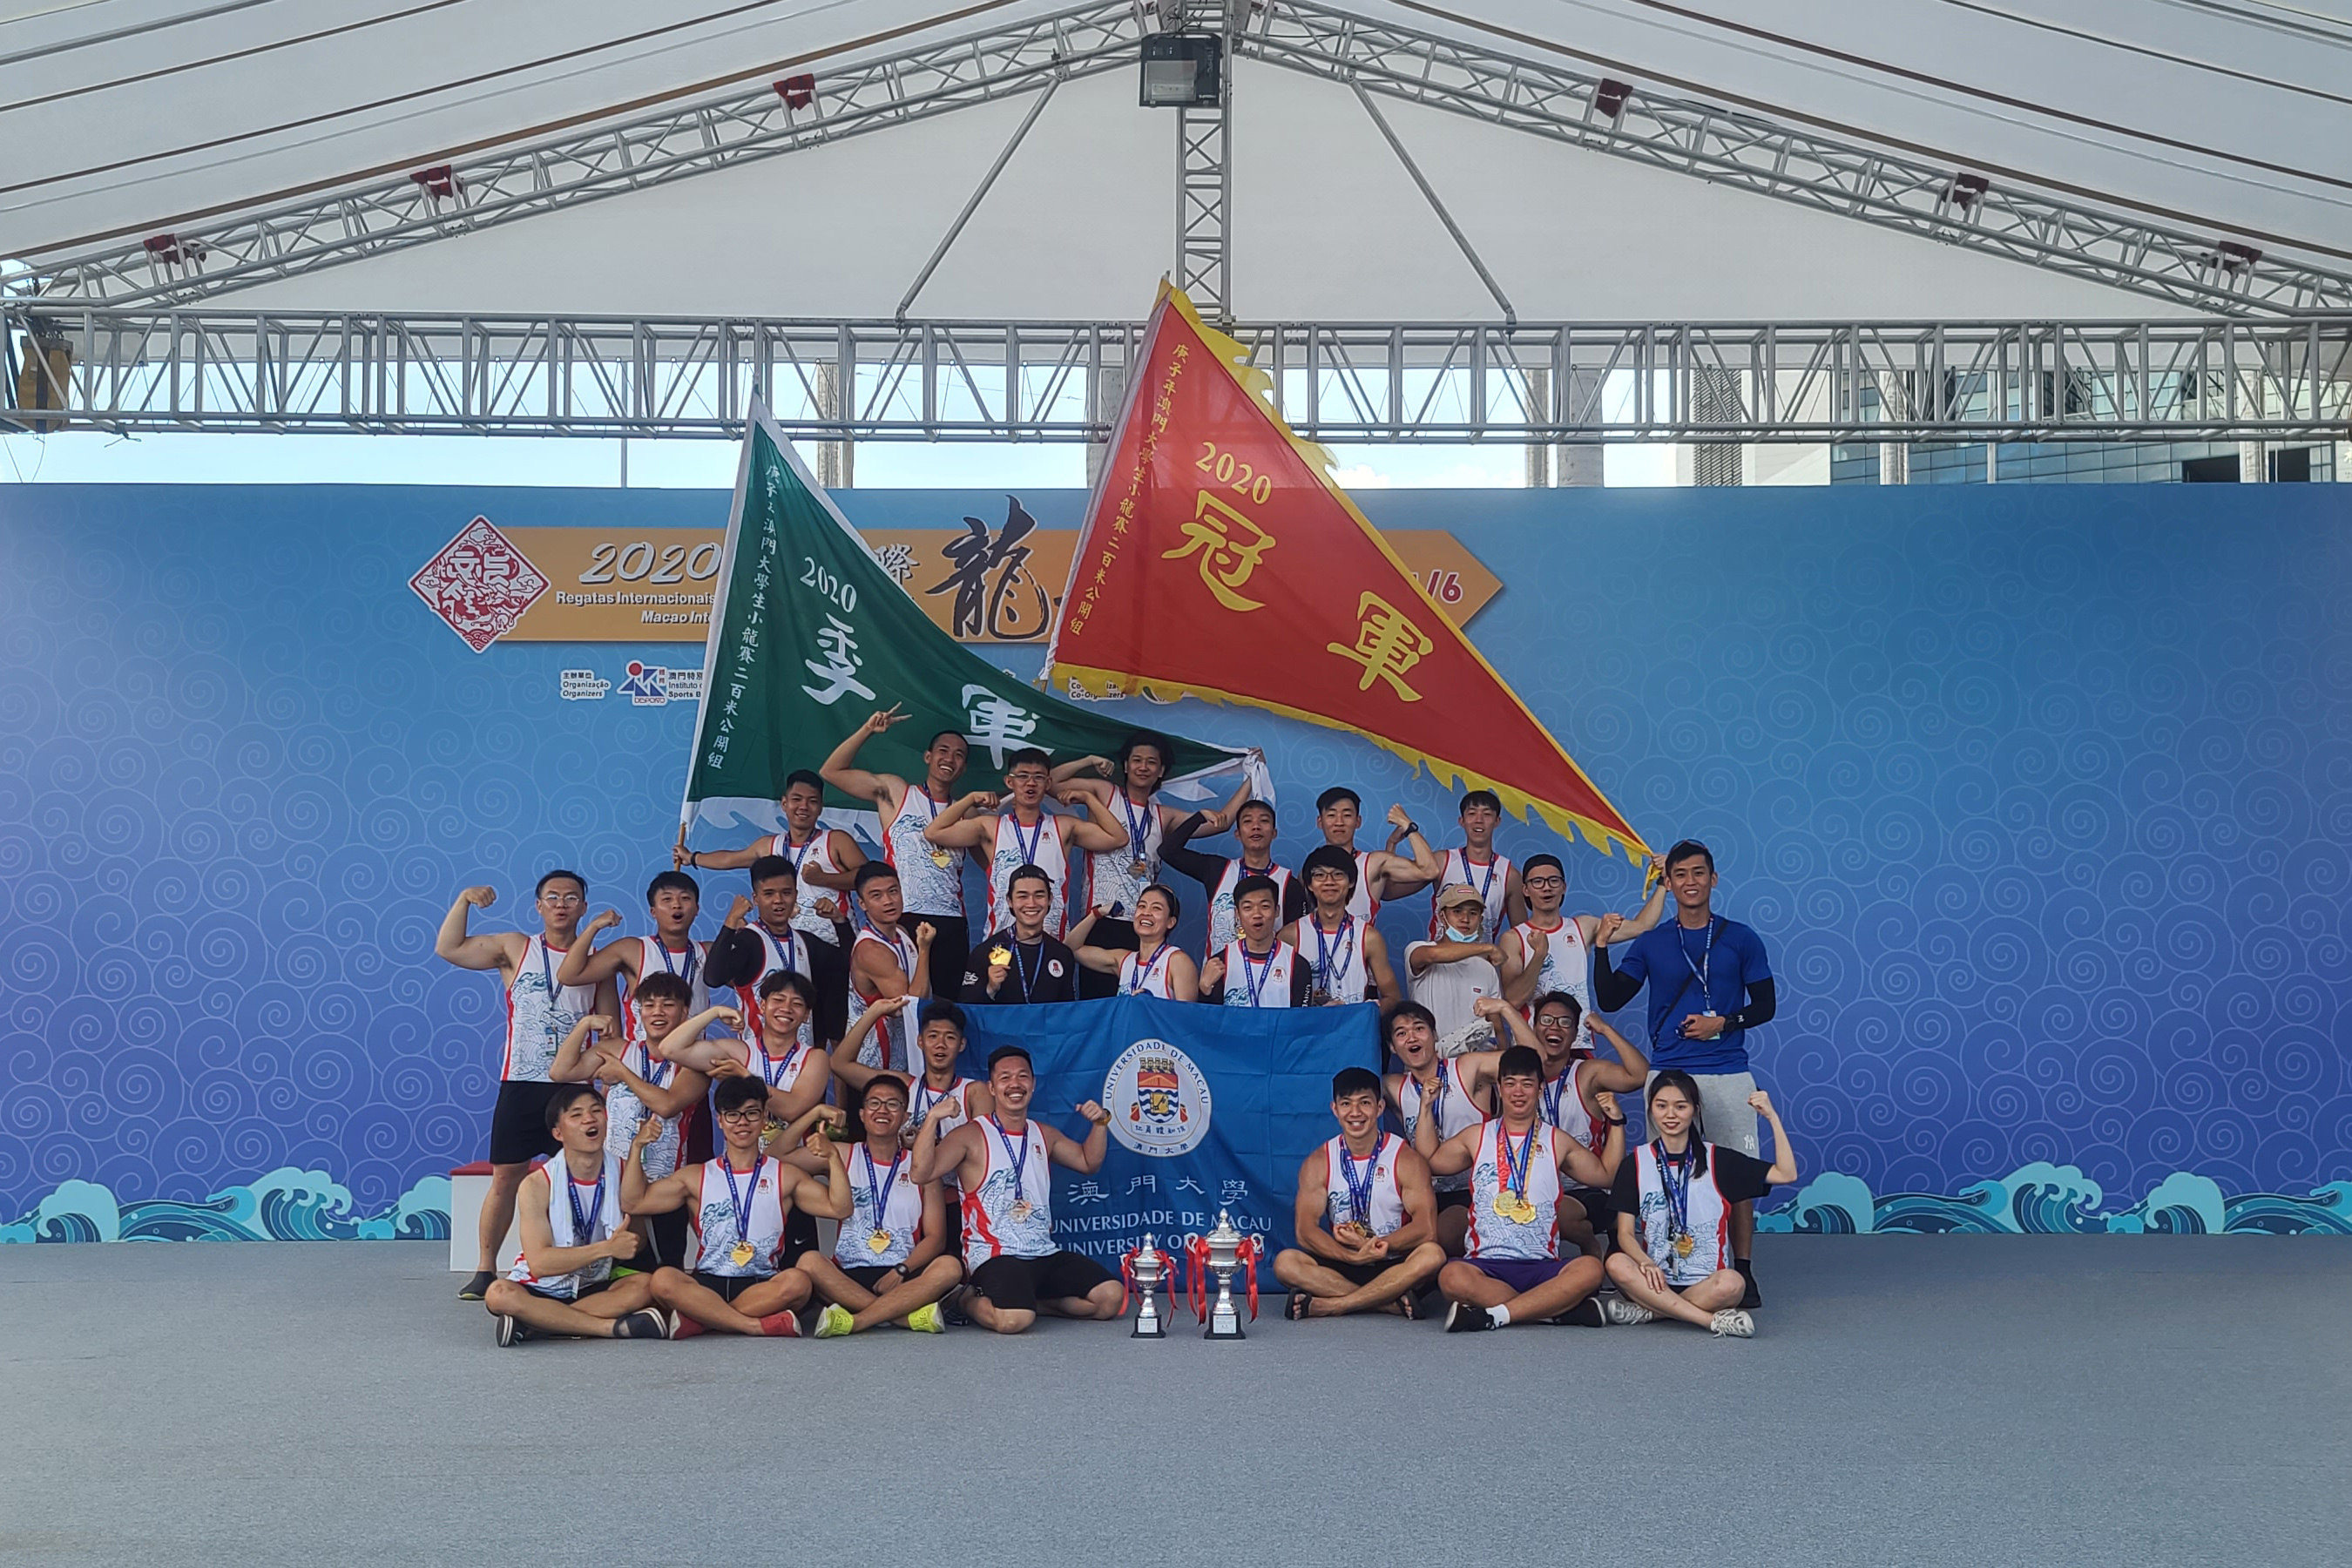 UM has won the championship of the Macao International Dragon Boat Races for four consecutive years